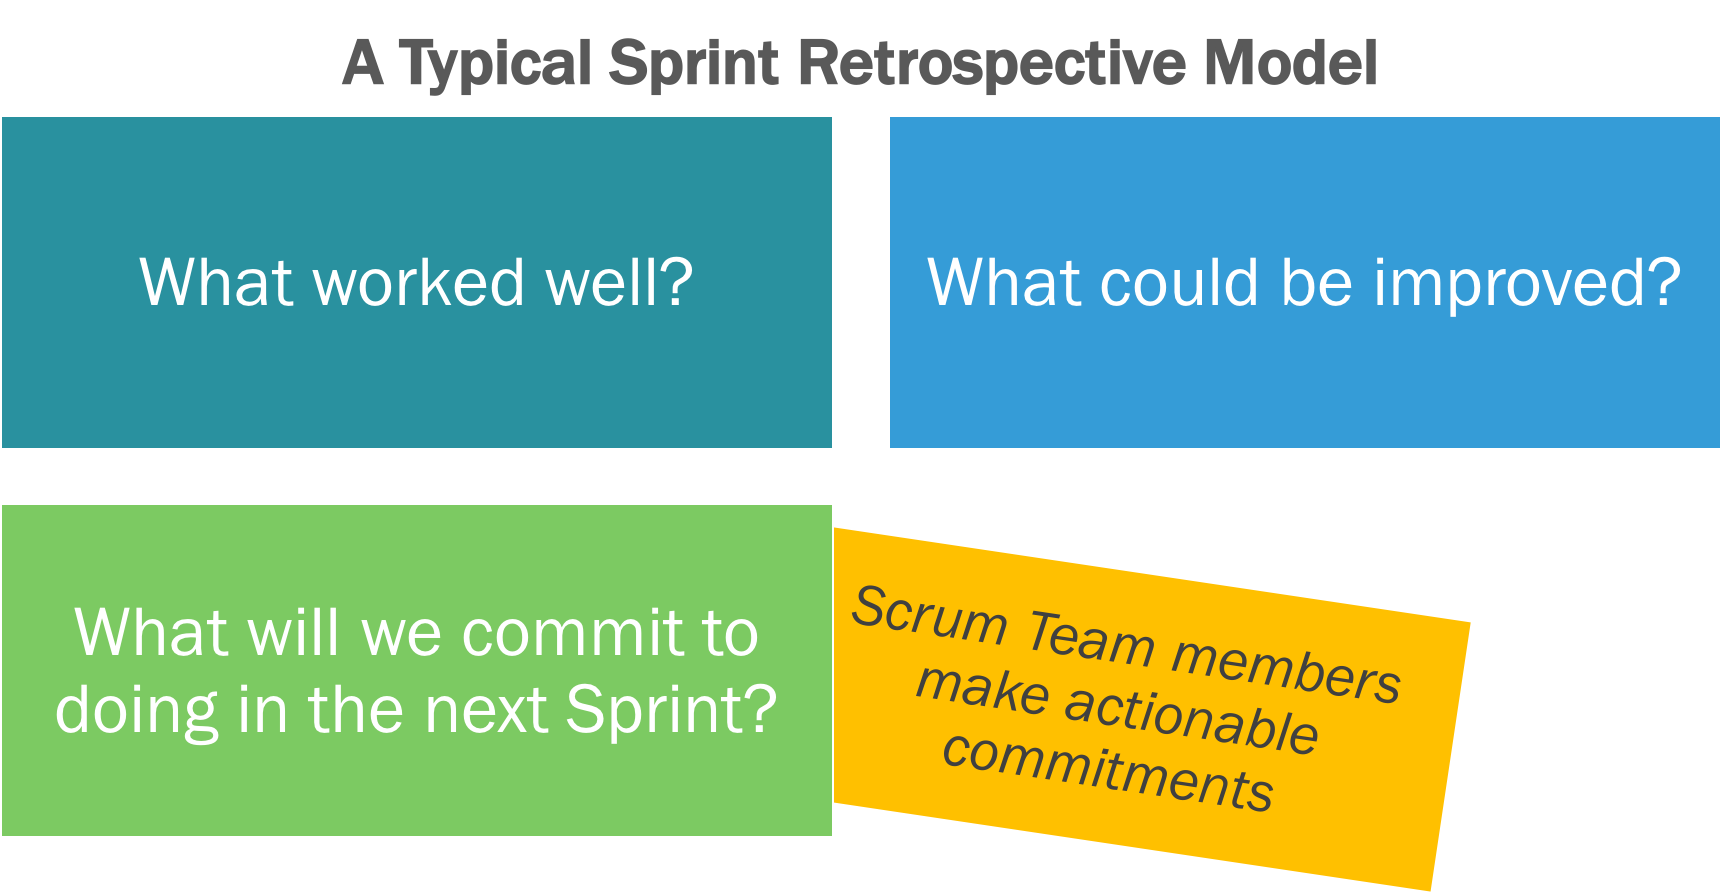 Typical Sprint Retrospective